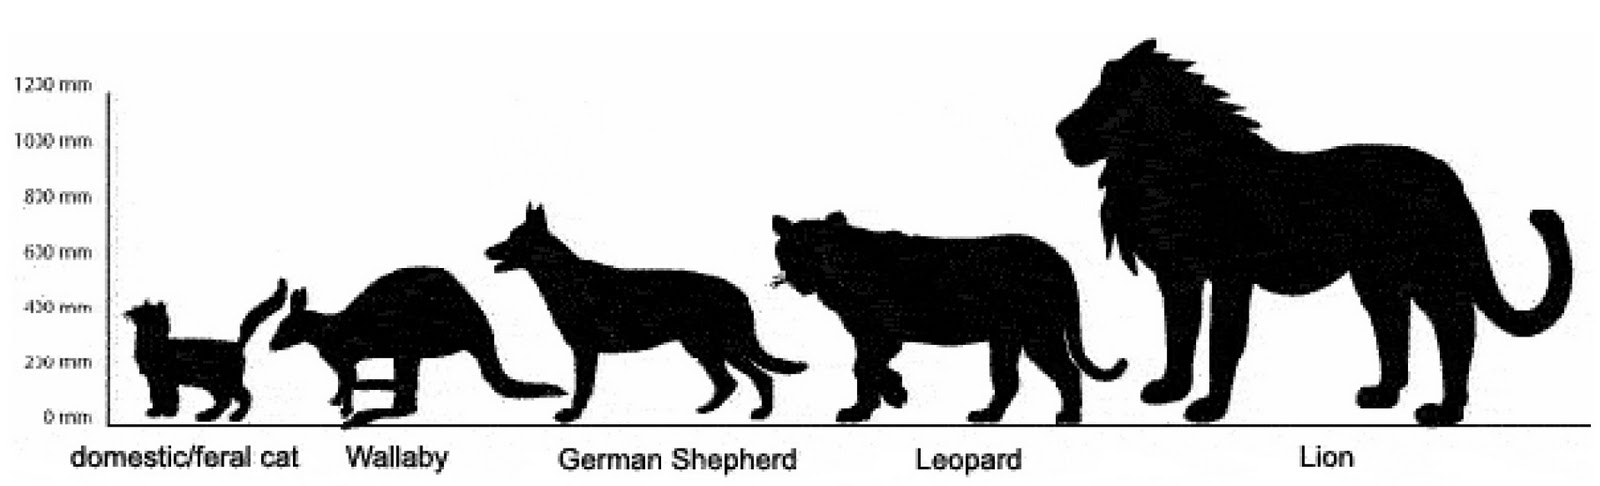 Big Cat Size Compared To Humans